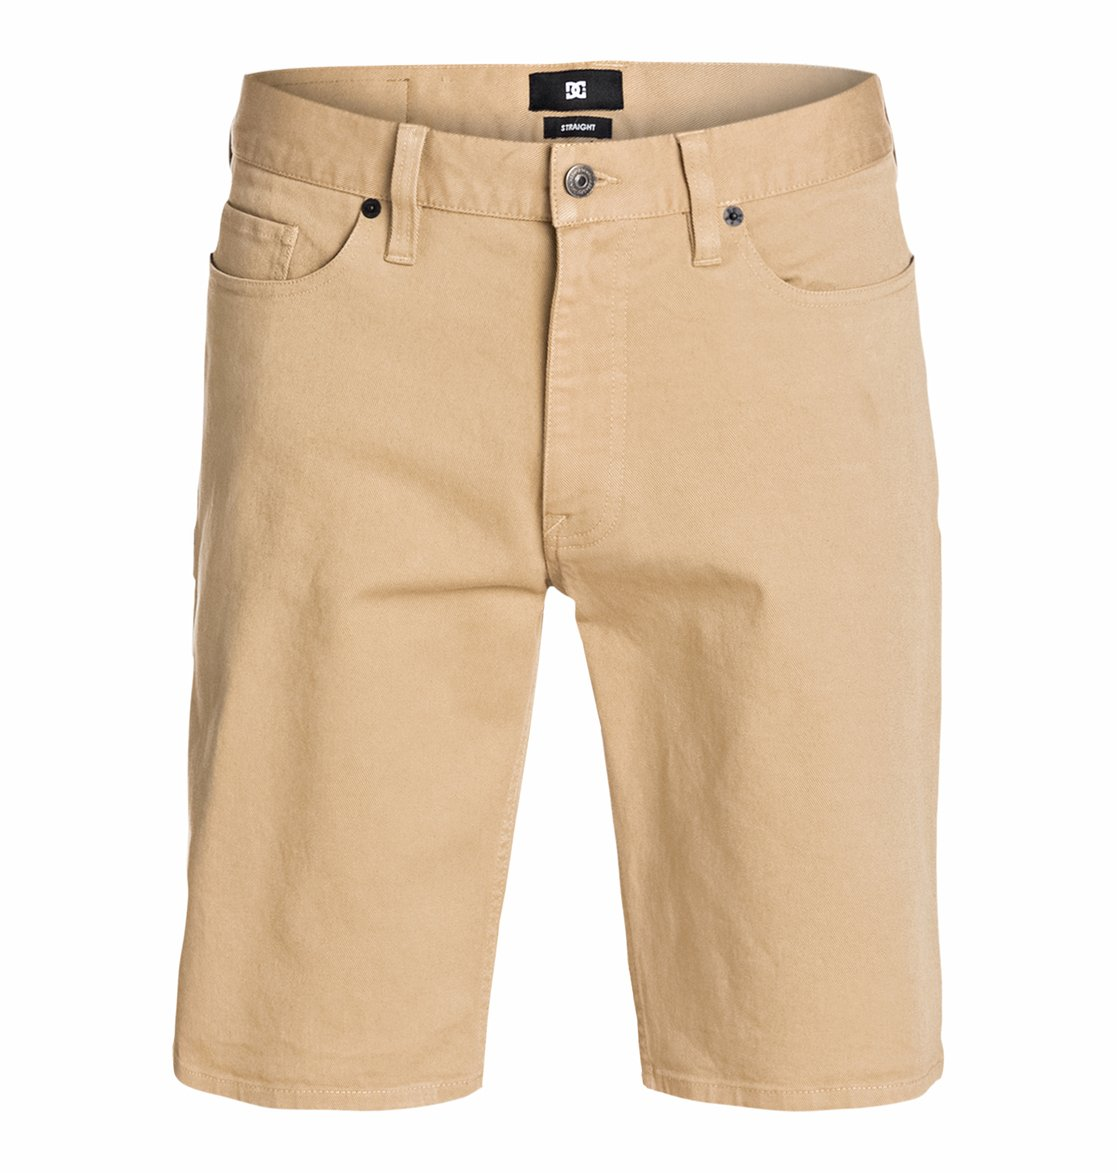 Worker Color Straight Shorts - Dcshoes������� ������ ����� Worker Color Straight Shorts �� DC Shoes � ������� �� ��������� ����� 2015. ��������������: ������� �� ������, ������������� ������, ������� � ������� DC.<br>